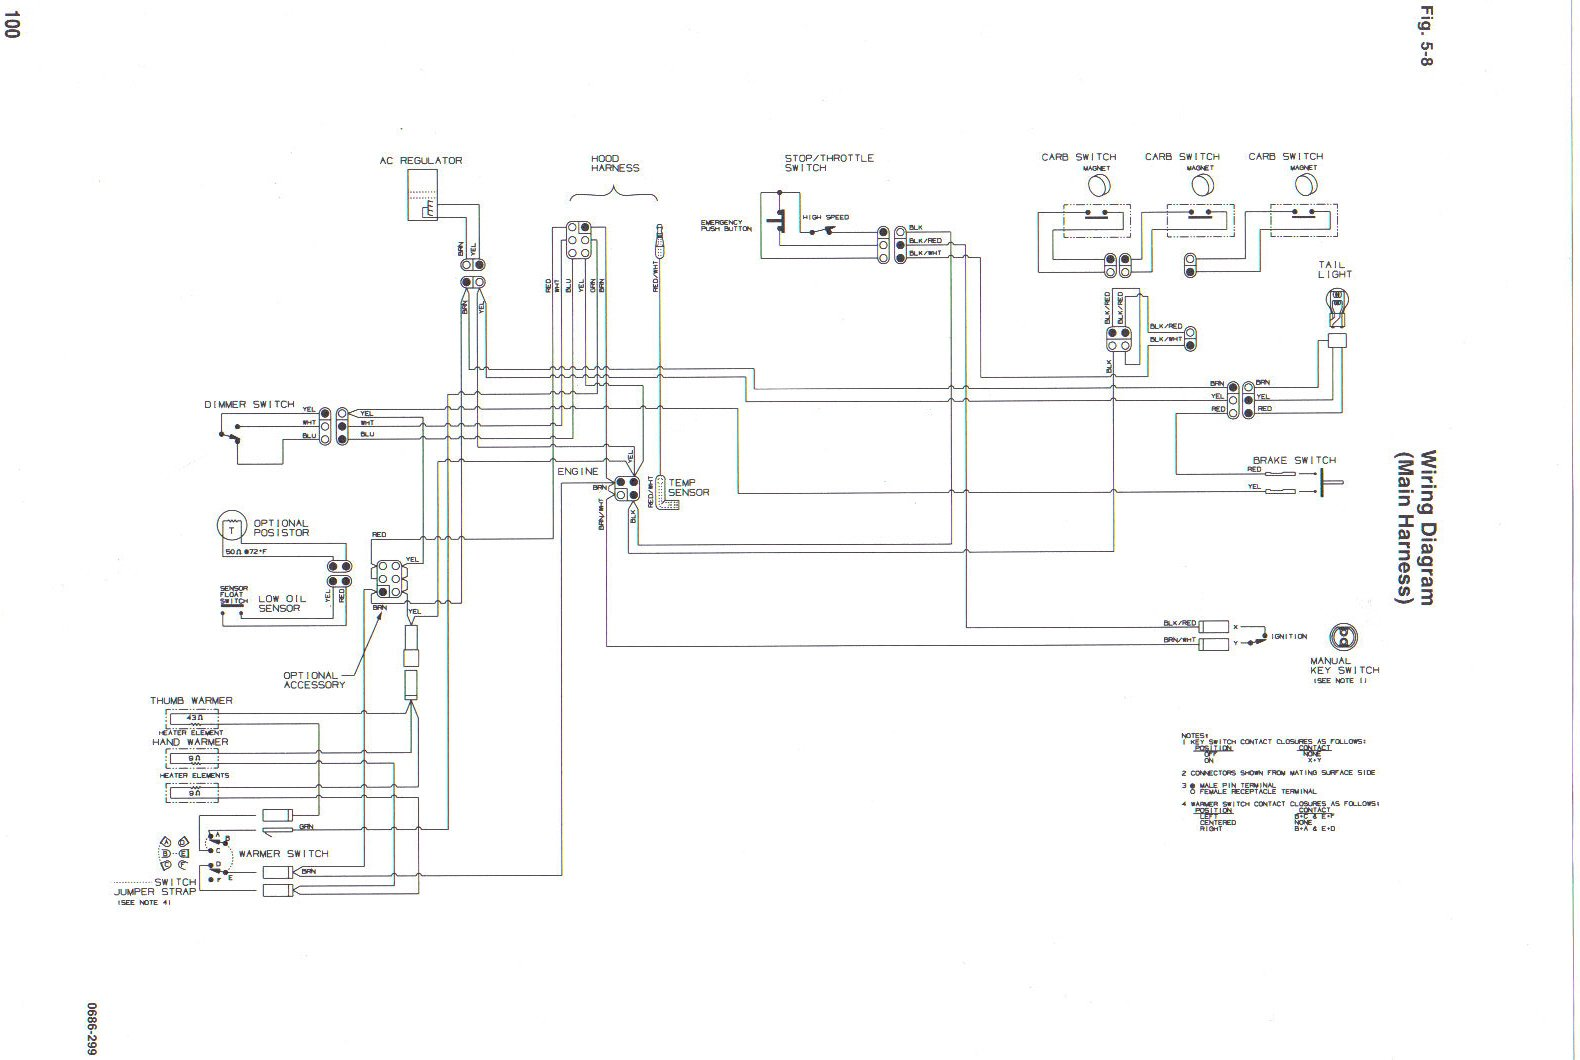 [DIAGRAM_38ZD]  need help on wiring | Arctic Cat Forum | Arctic Cat Snowmobile 4 Stroke Wiring Diagrams |  | Arctic Cat Forum